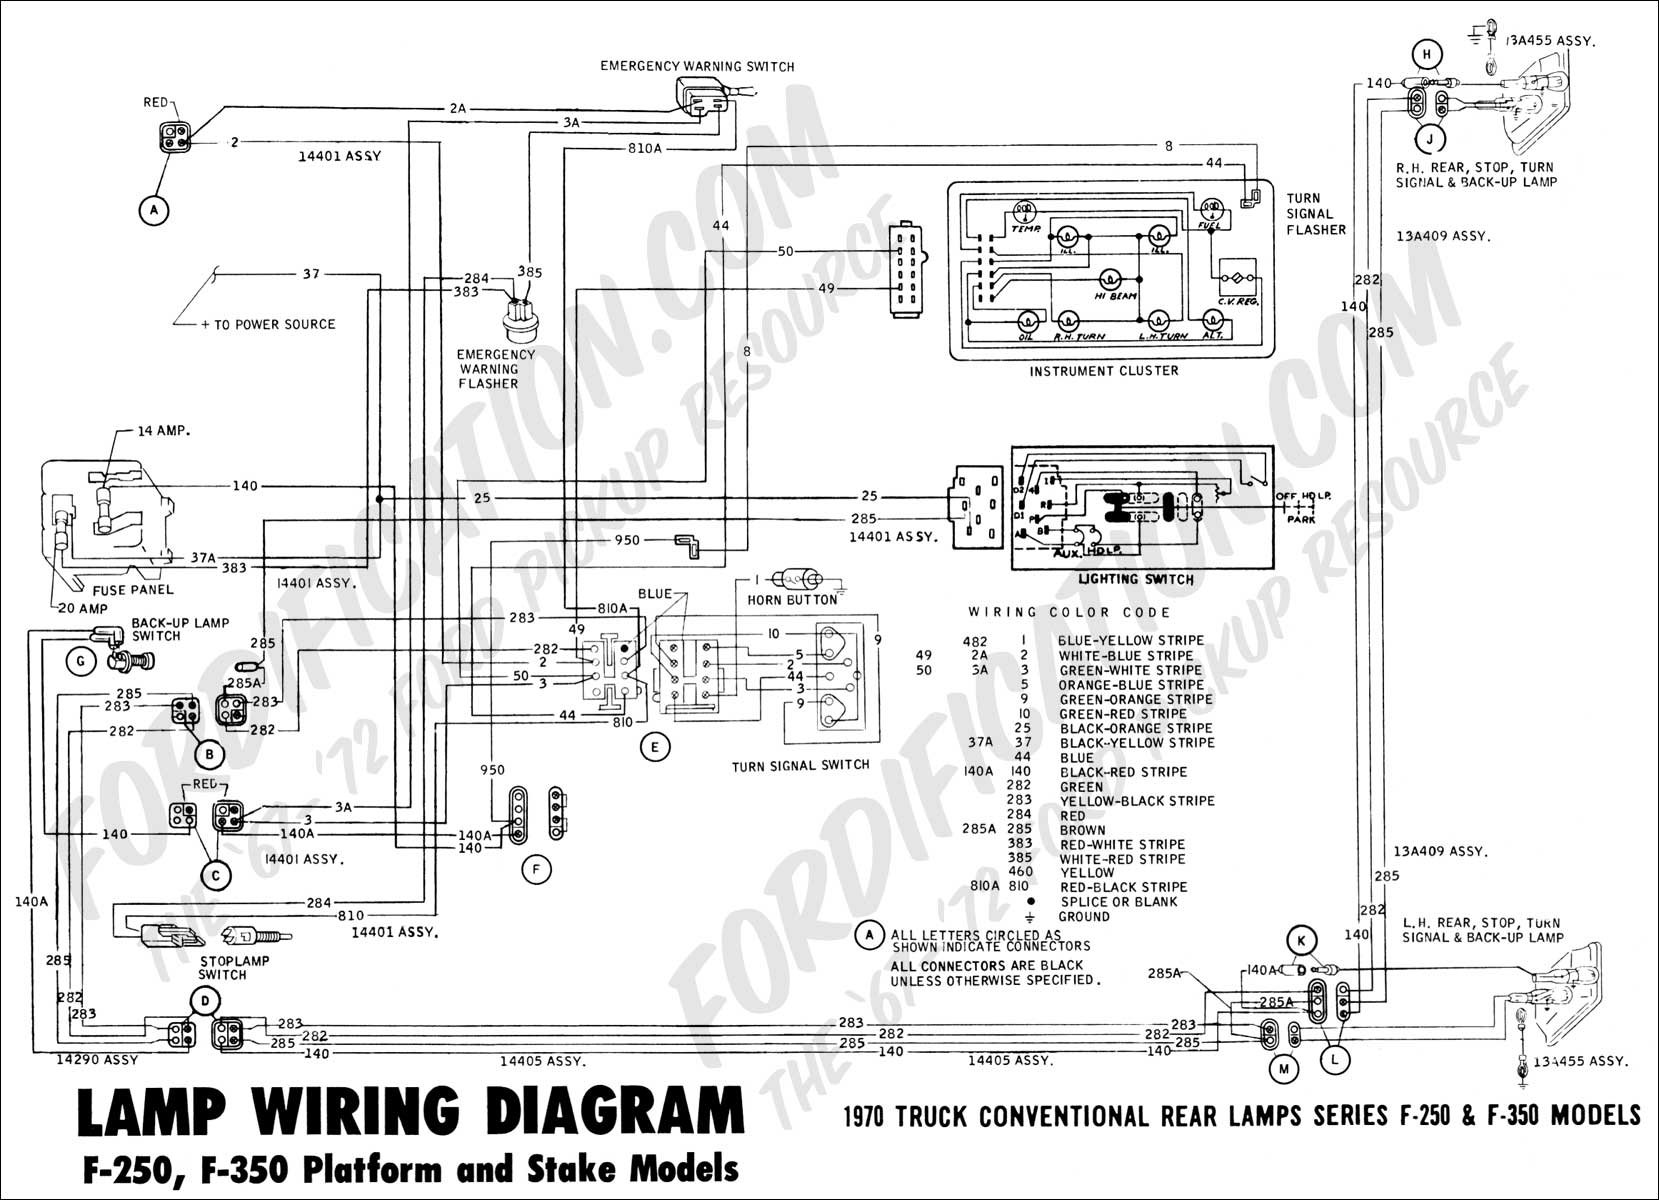 1970 F100 Wiring Diagram Books Of 1991 Toyota Pickup Turn Signal Ford Truck Technical Drawings And Schematics Section H Rh Fordification Com Dash